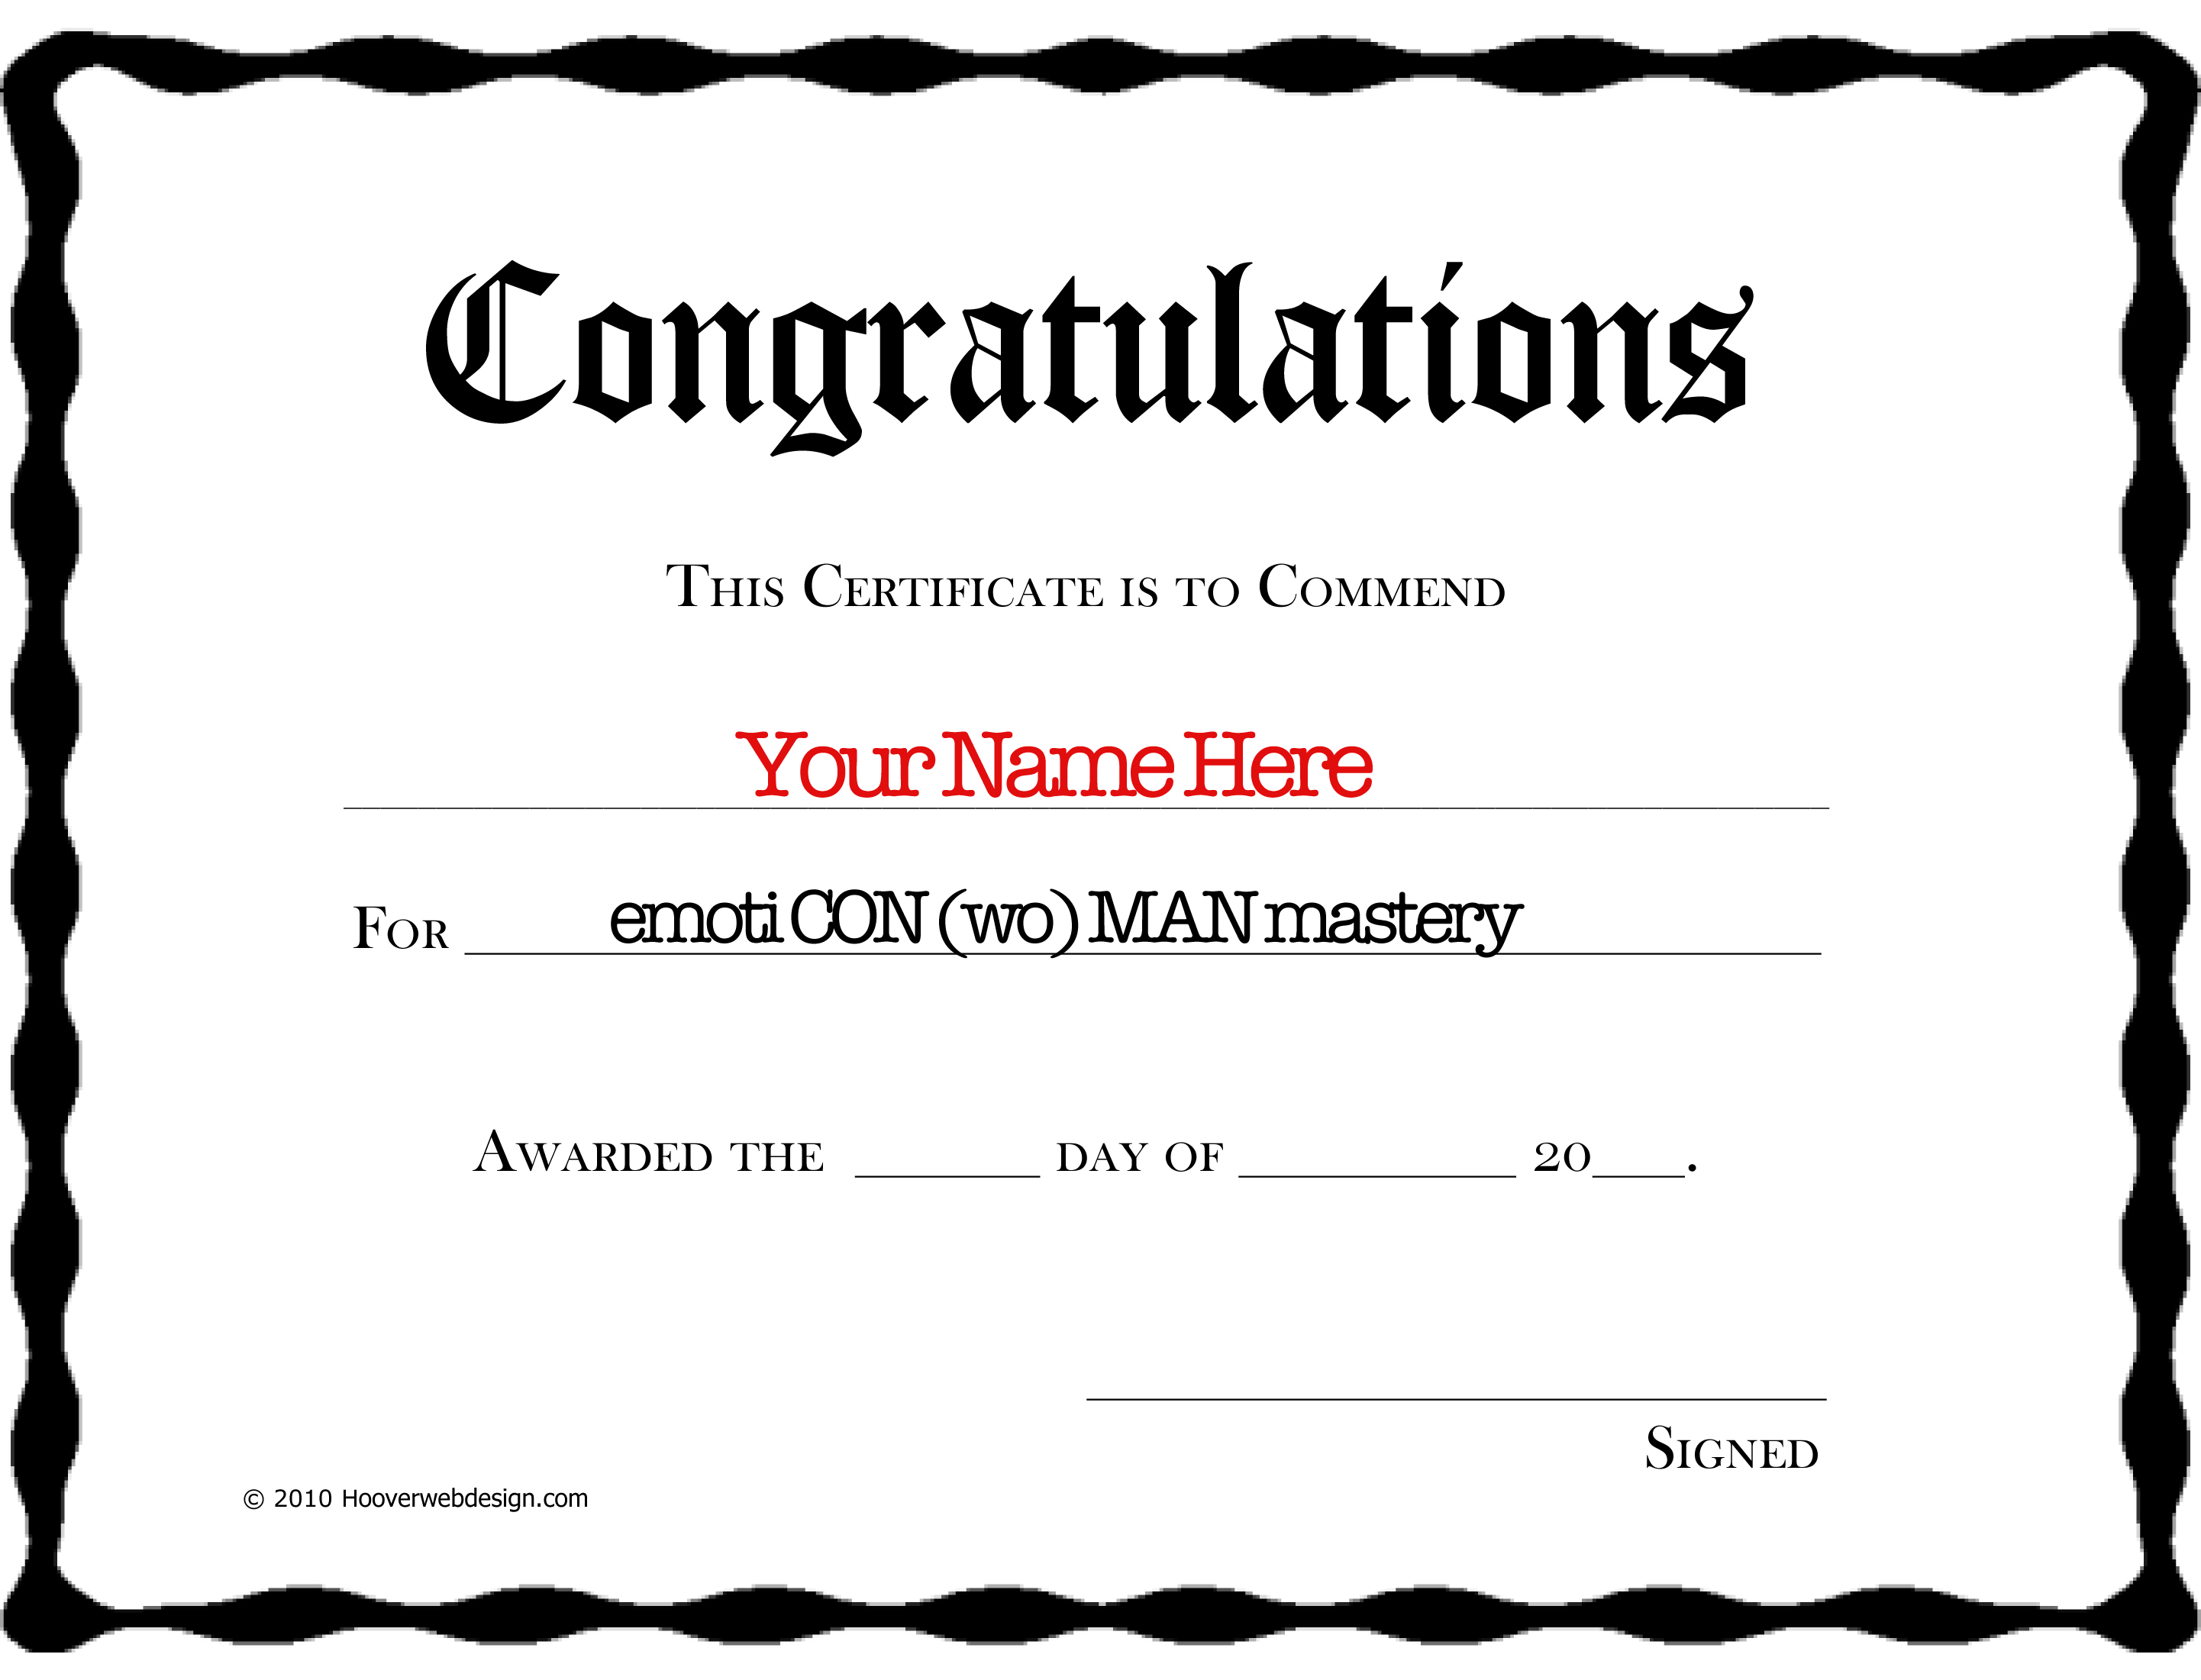 Printable congratulations certificate template examples delightful 28 congratulations certificate template word printable congratulations awards certificate congratulations certificate template wordhtml yadclub Images